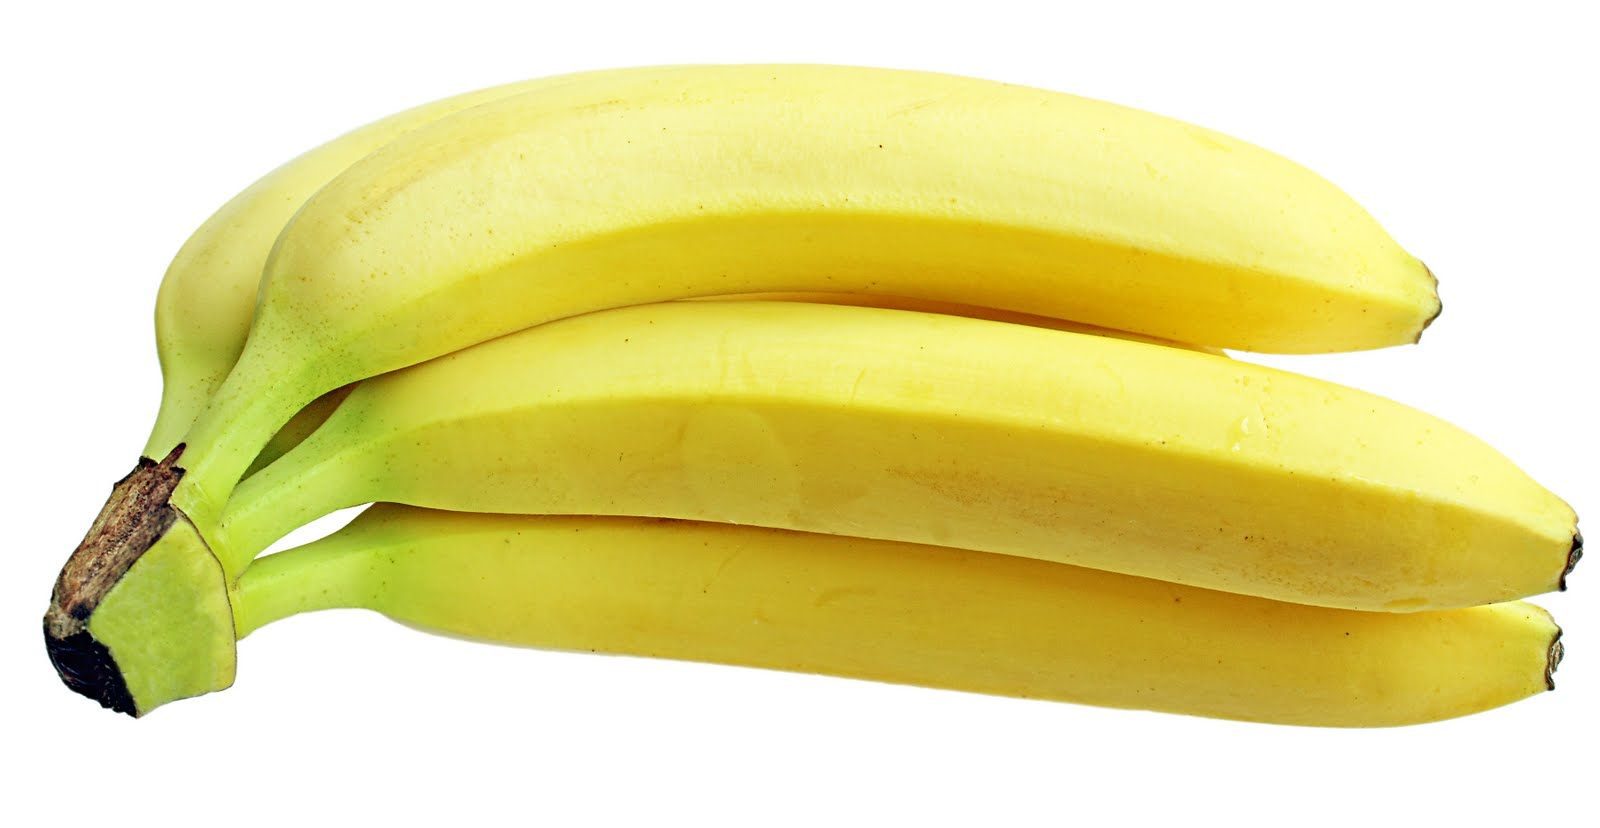 Yellow Images Banana HD Wallpaper And Background Photos